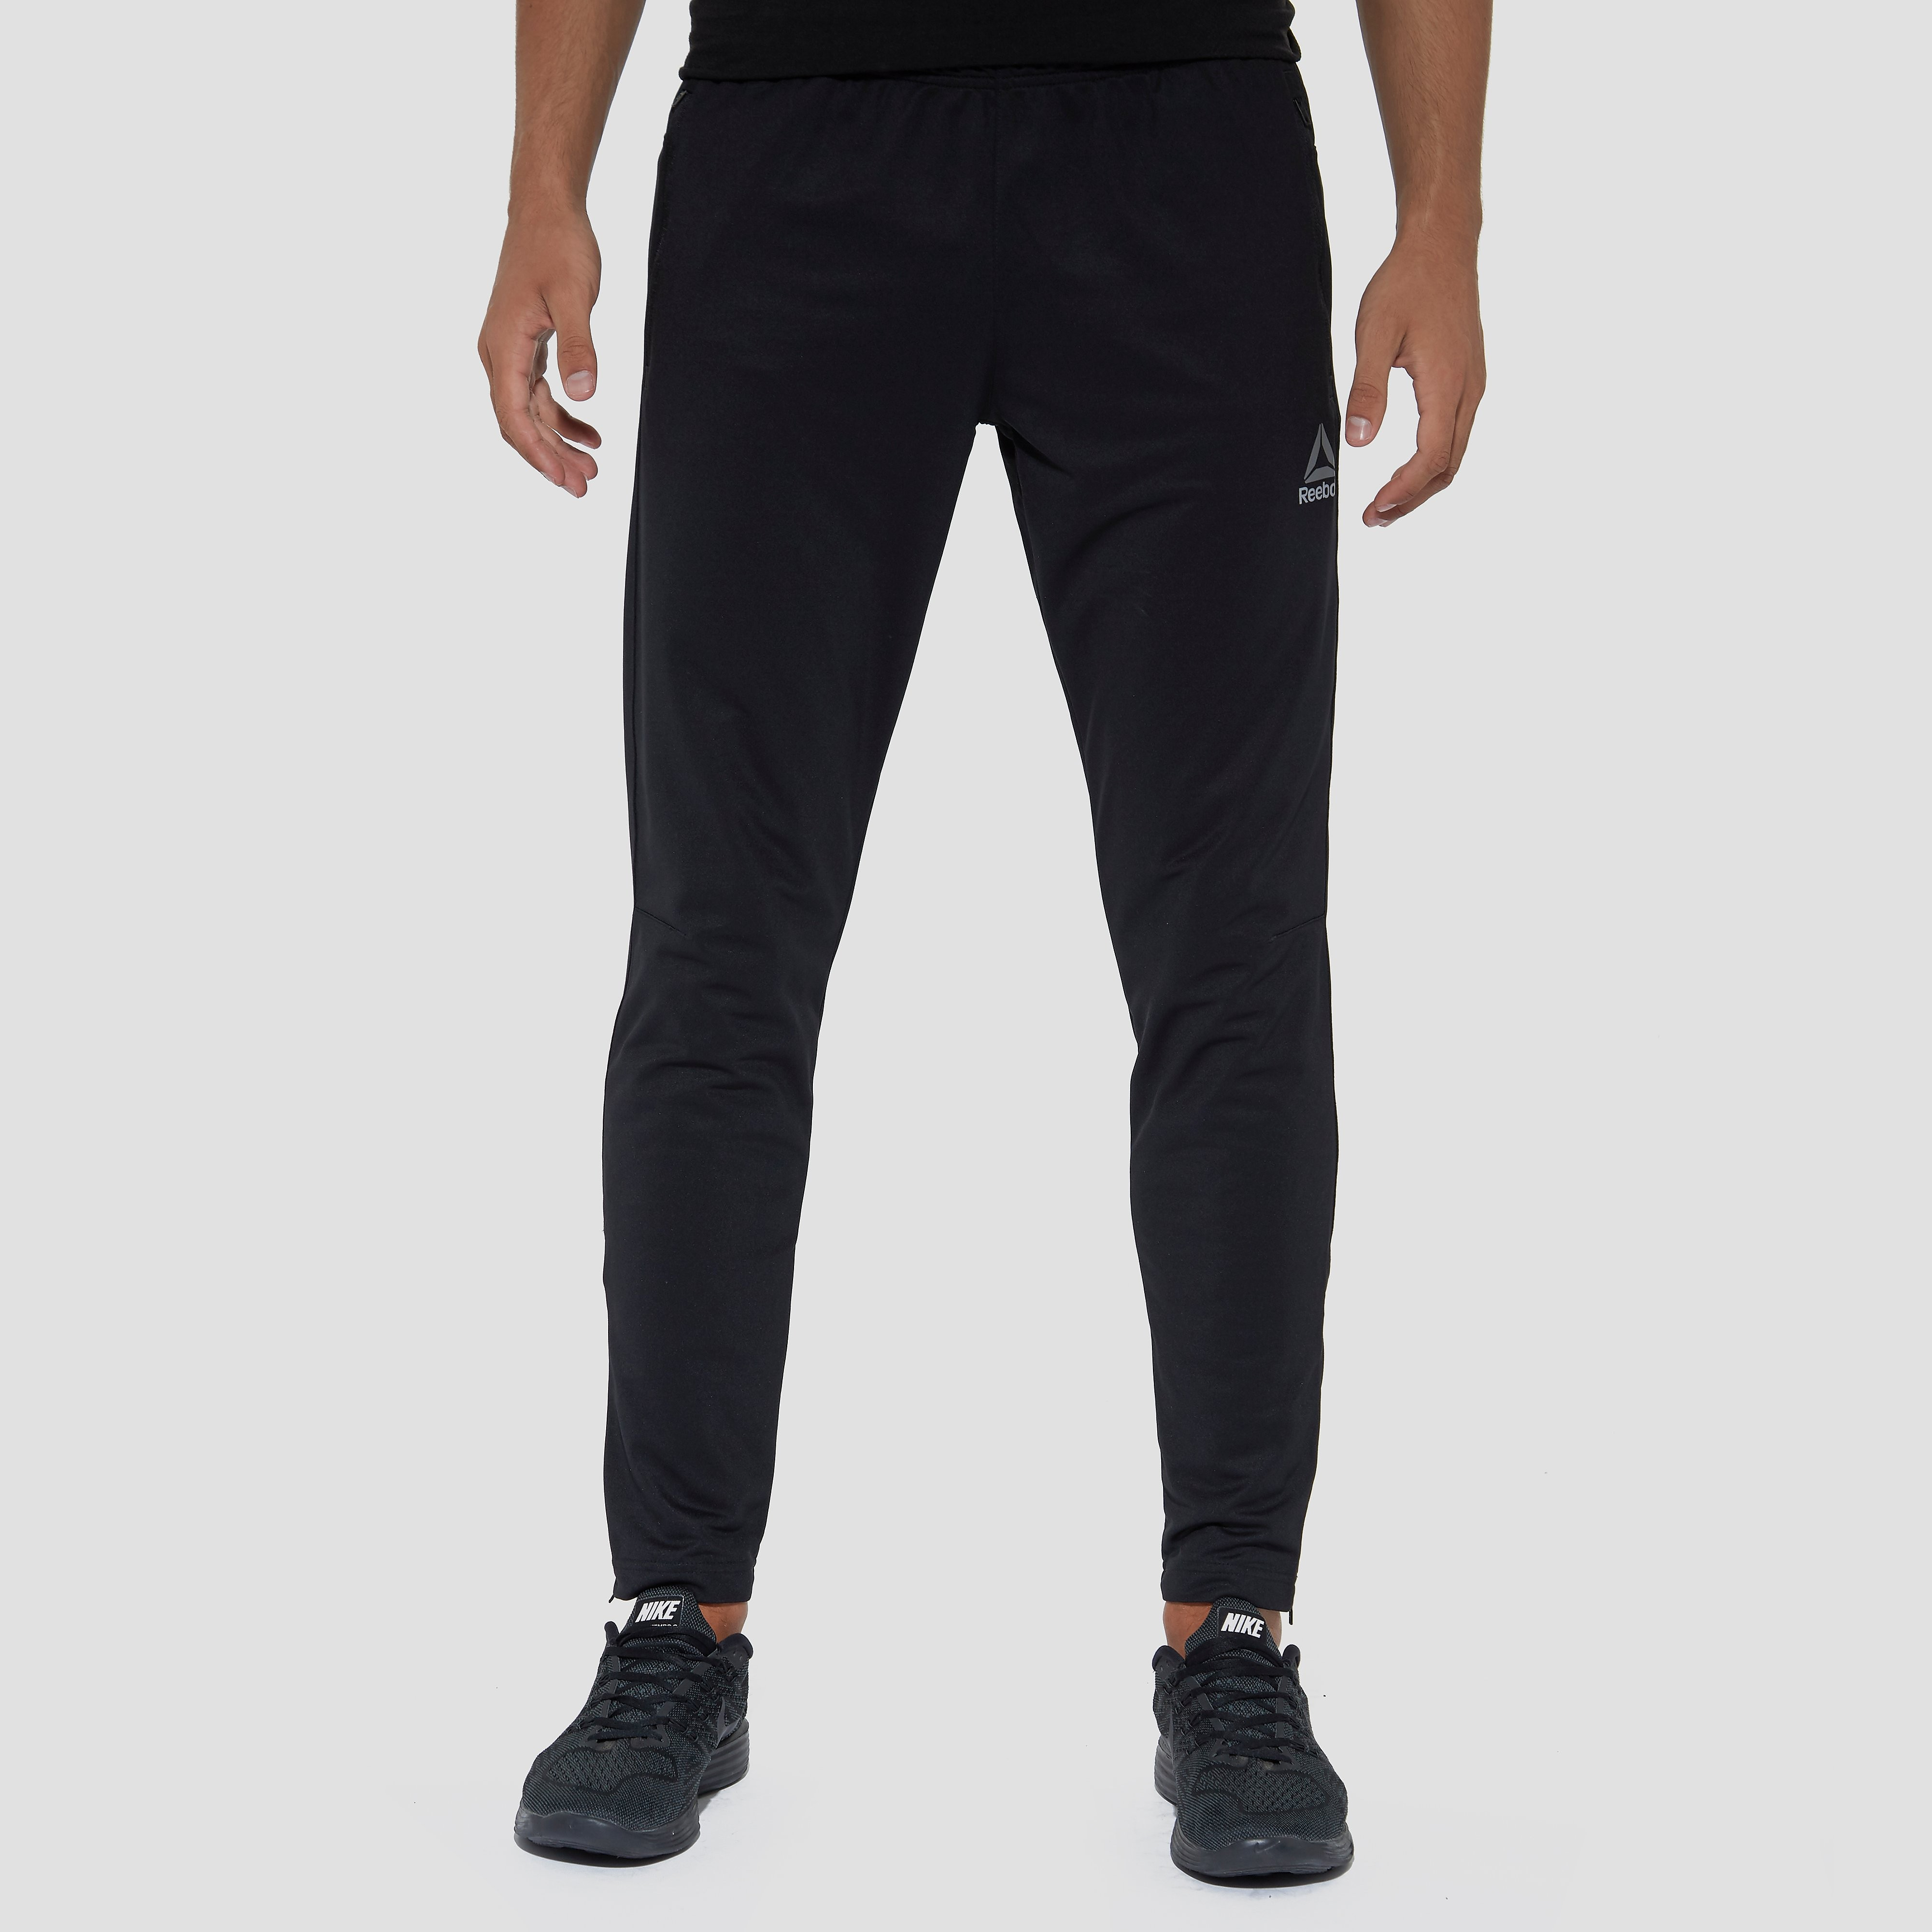 REEBOK WORKOUT READY SPORTBROEK ZWART HEREN